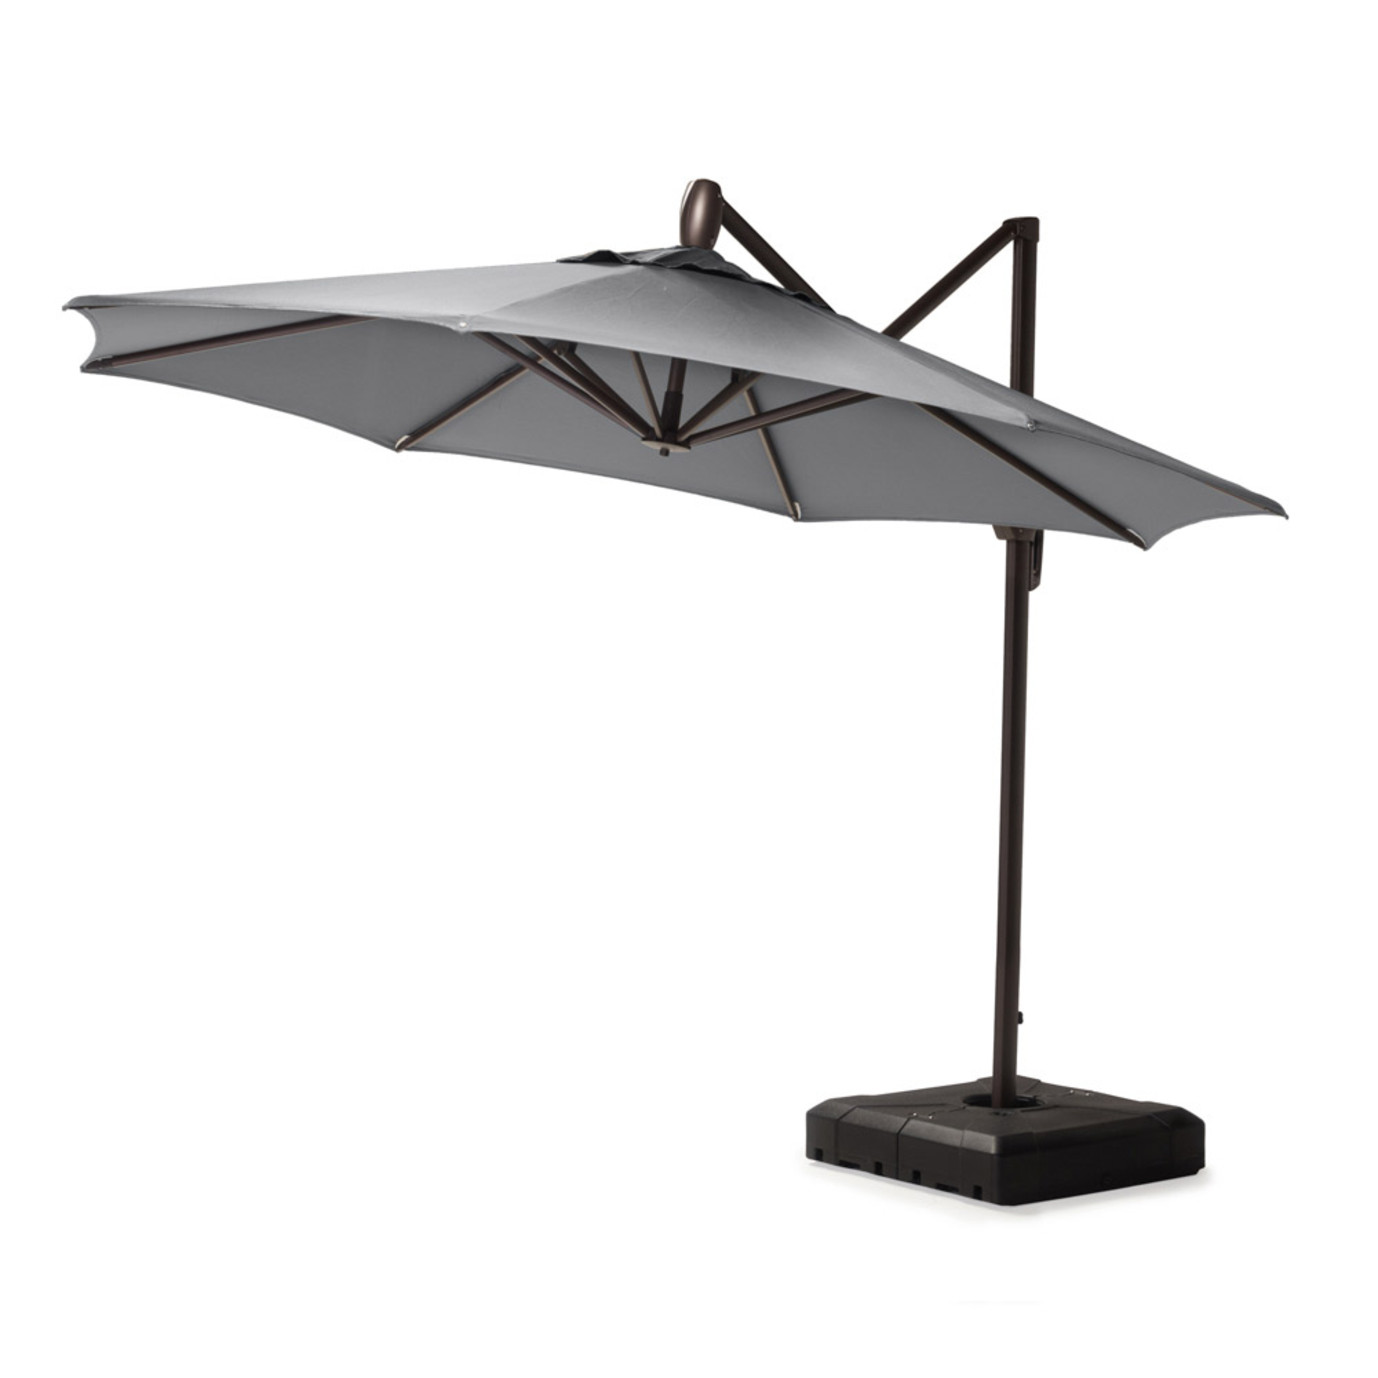 Modular Outdoor 10' Round Umbrella - Charcoal Gray